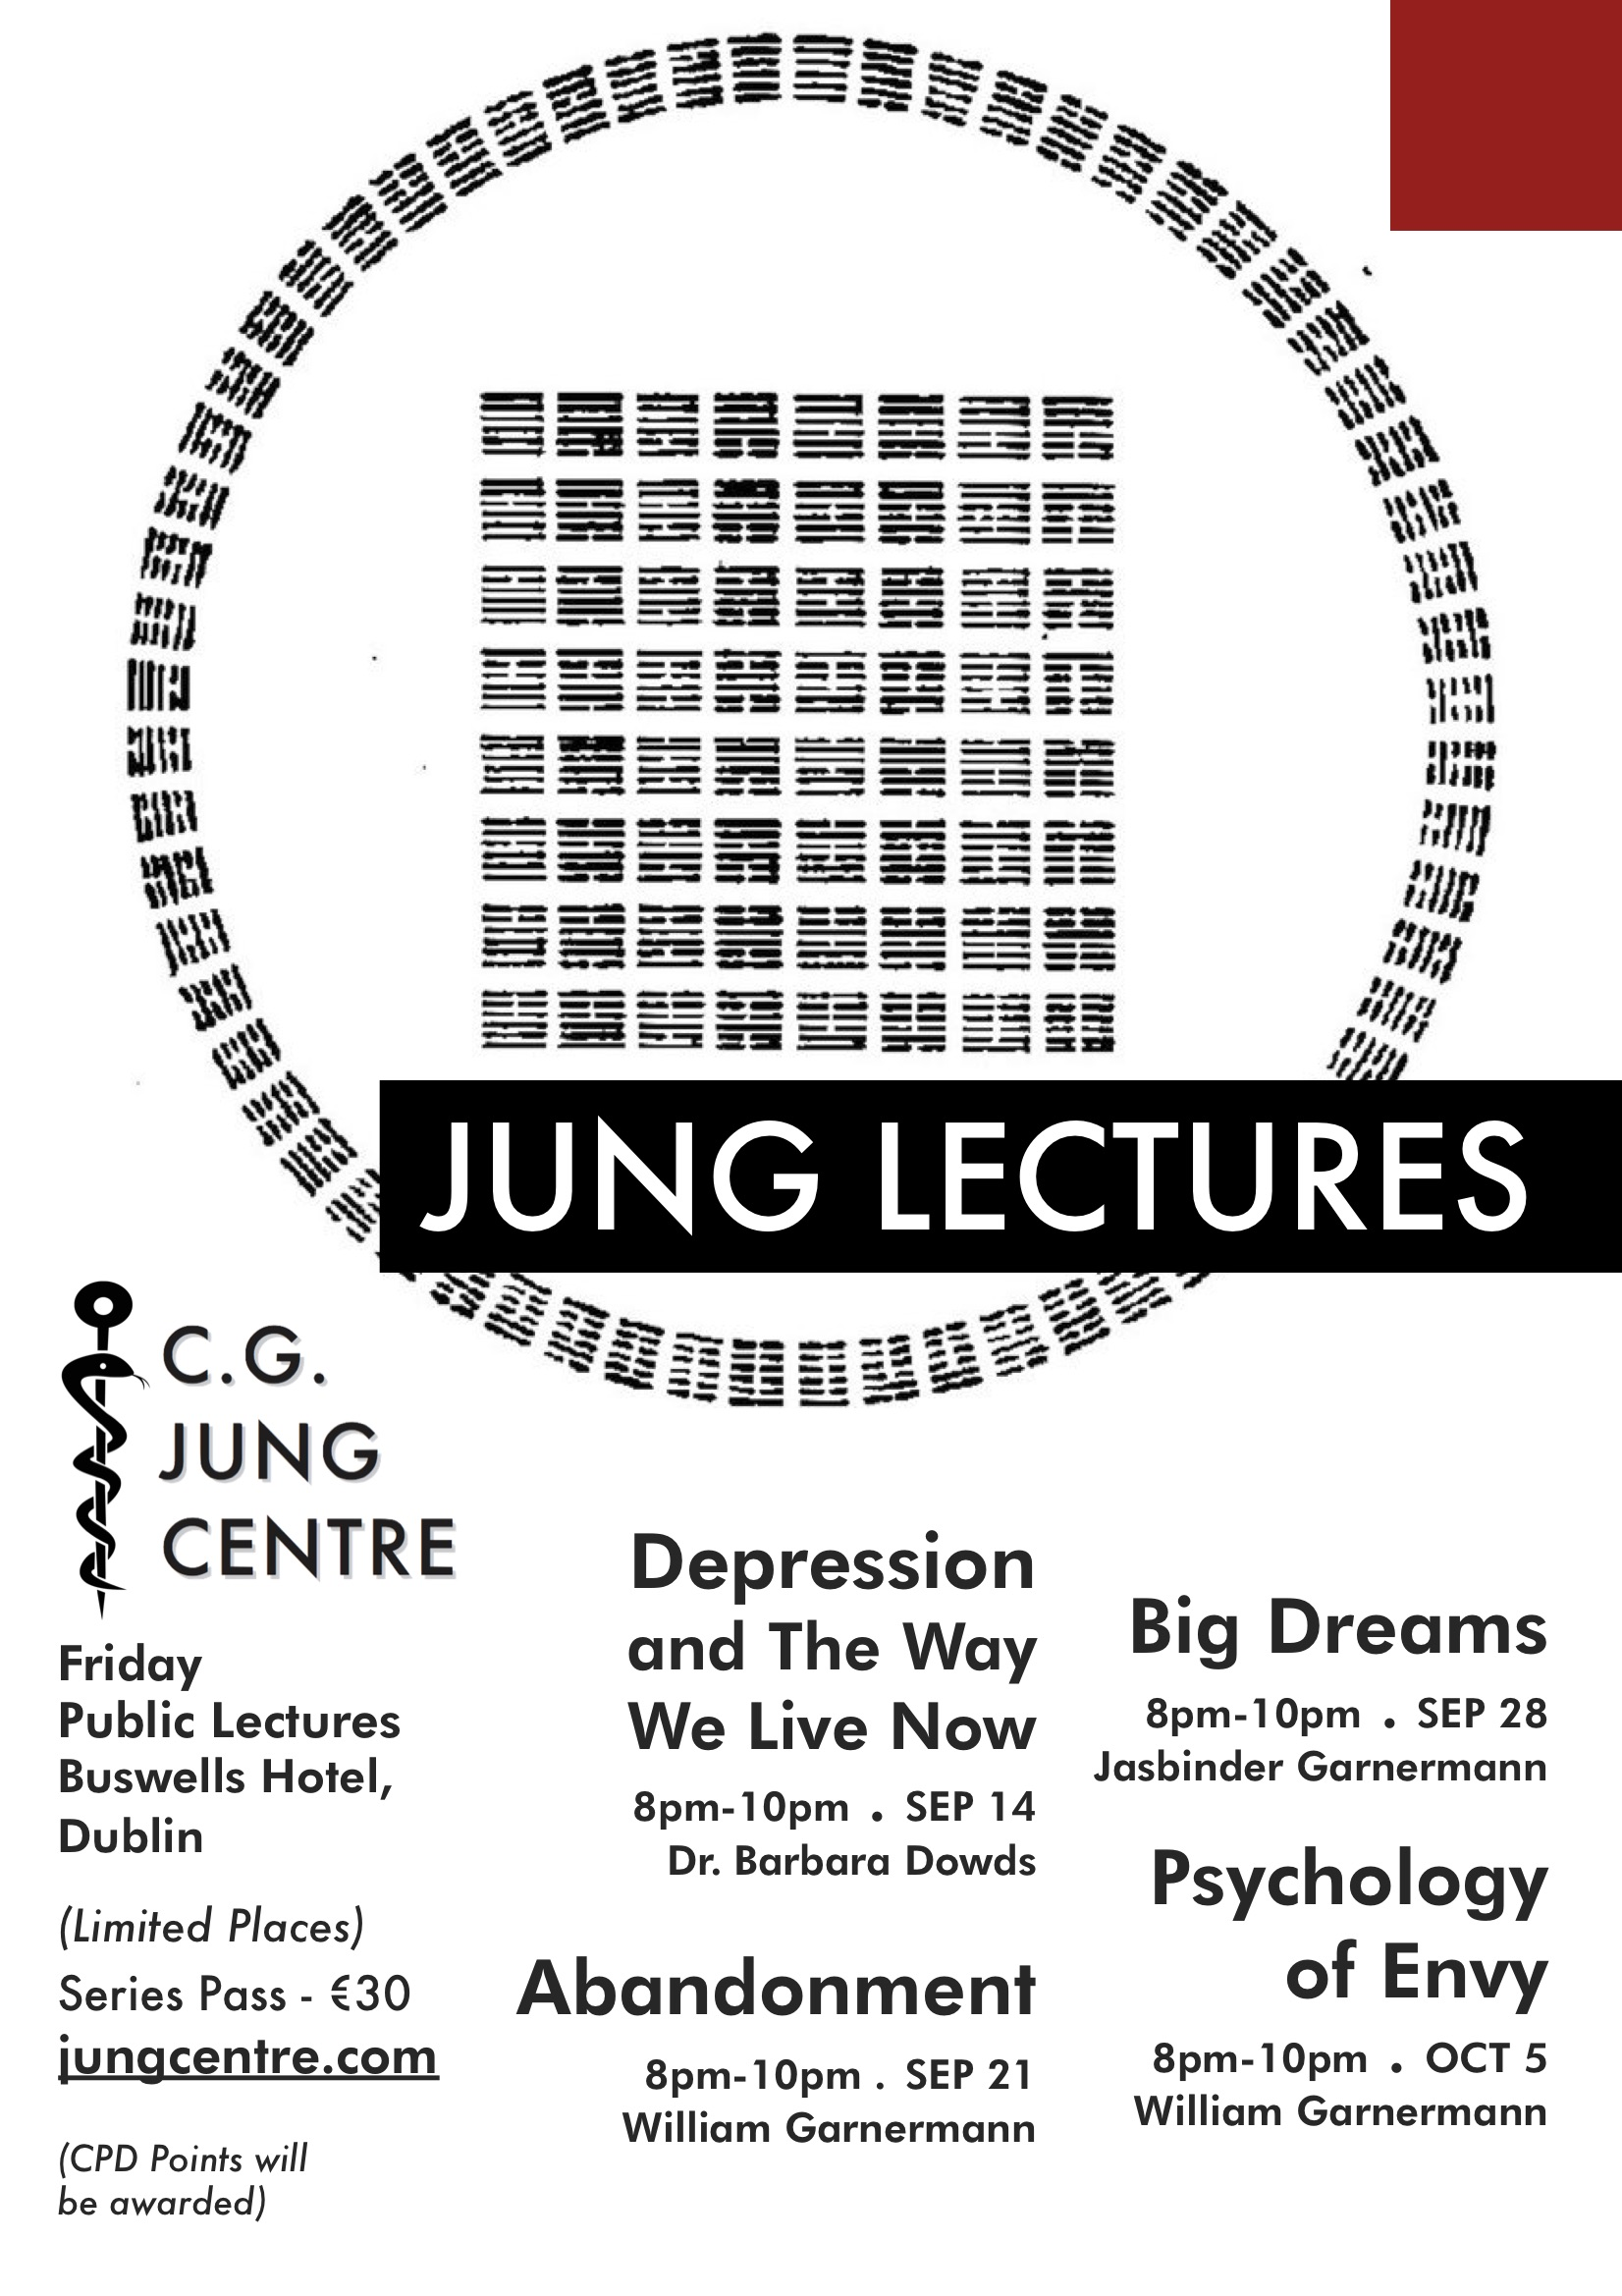 JUNG LECTURES AUG 2018.jpg